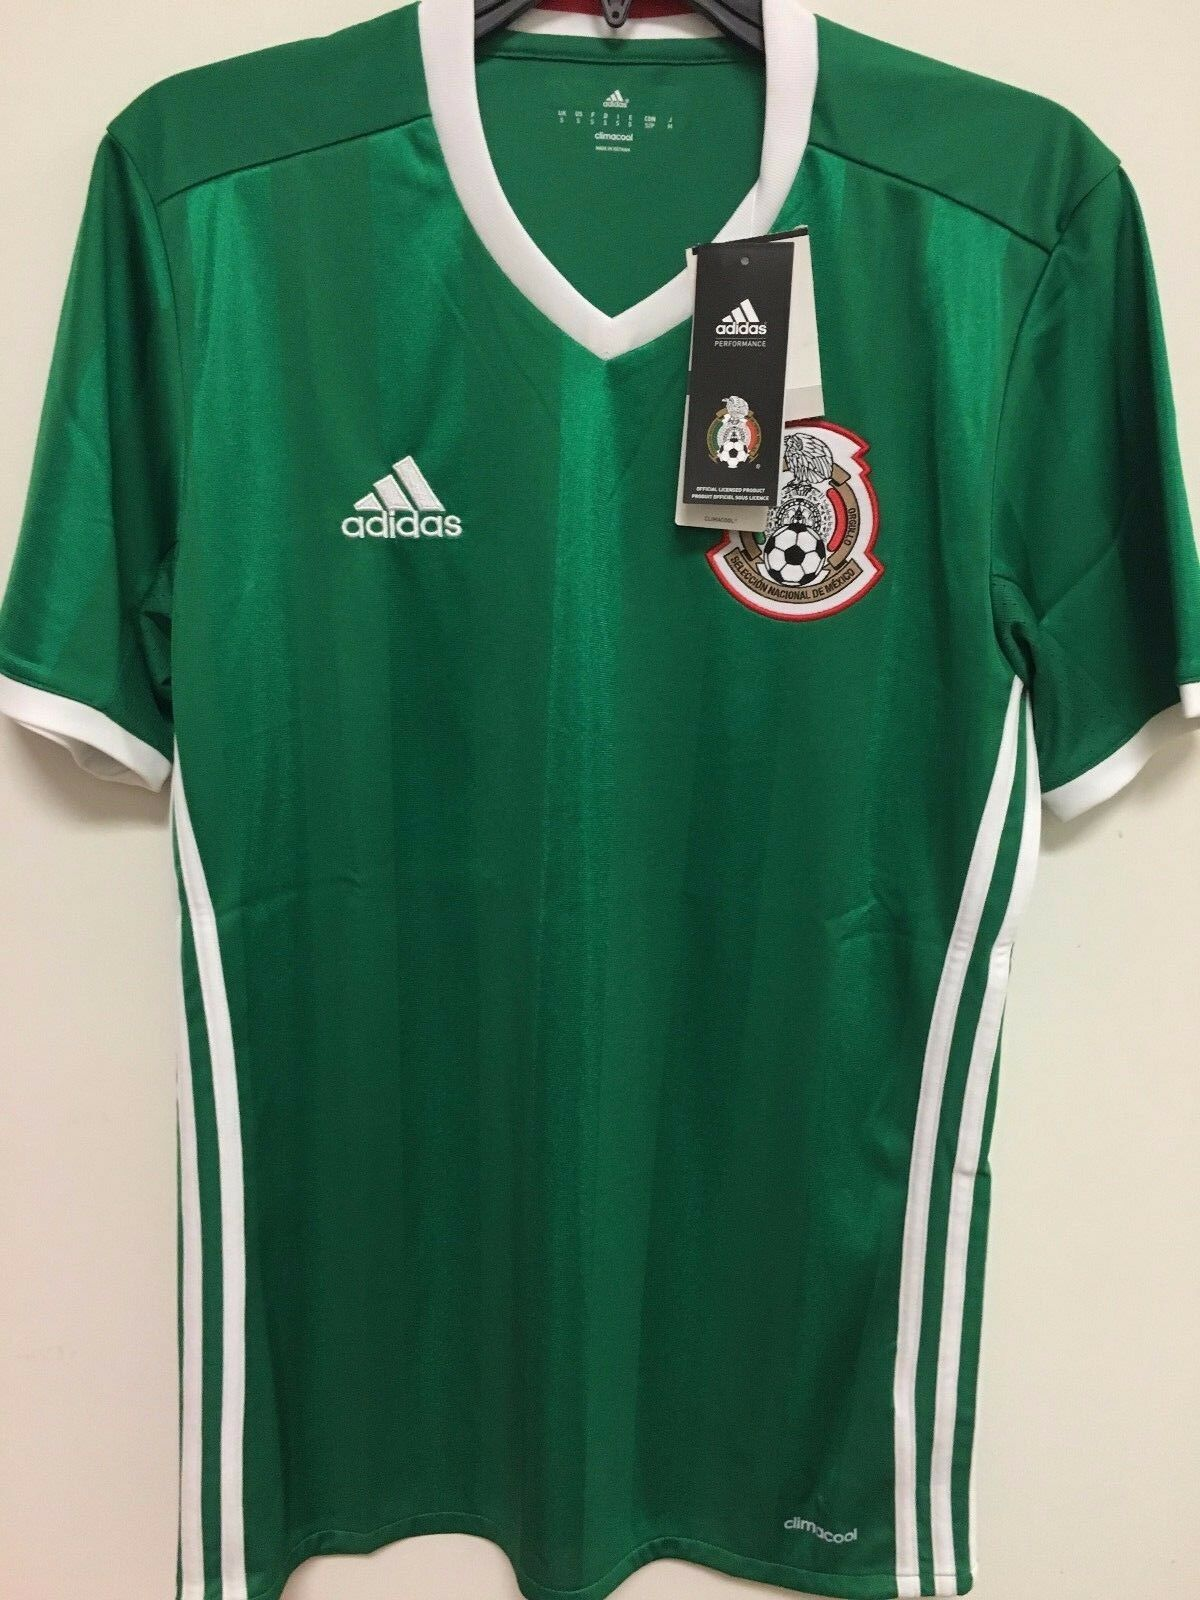 Adidas Mexico Official 2016 2017 Home Soccer Football Jersey